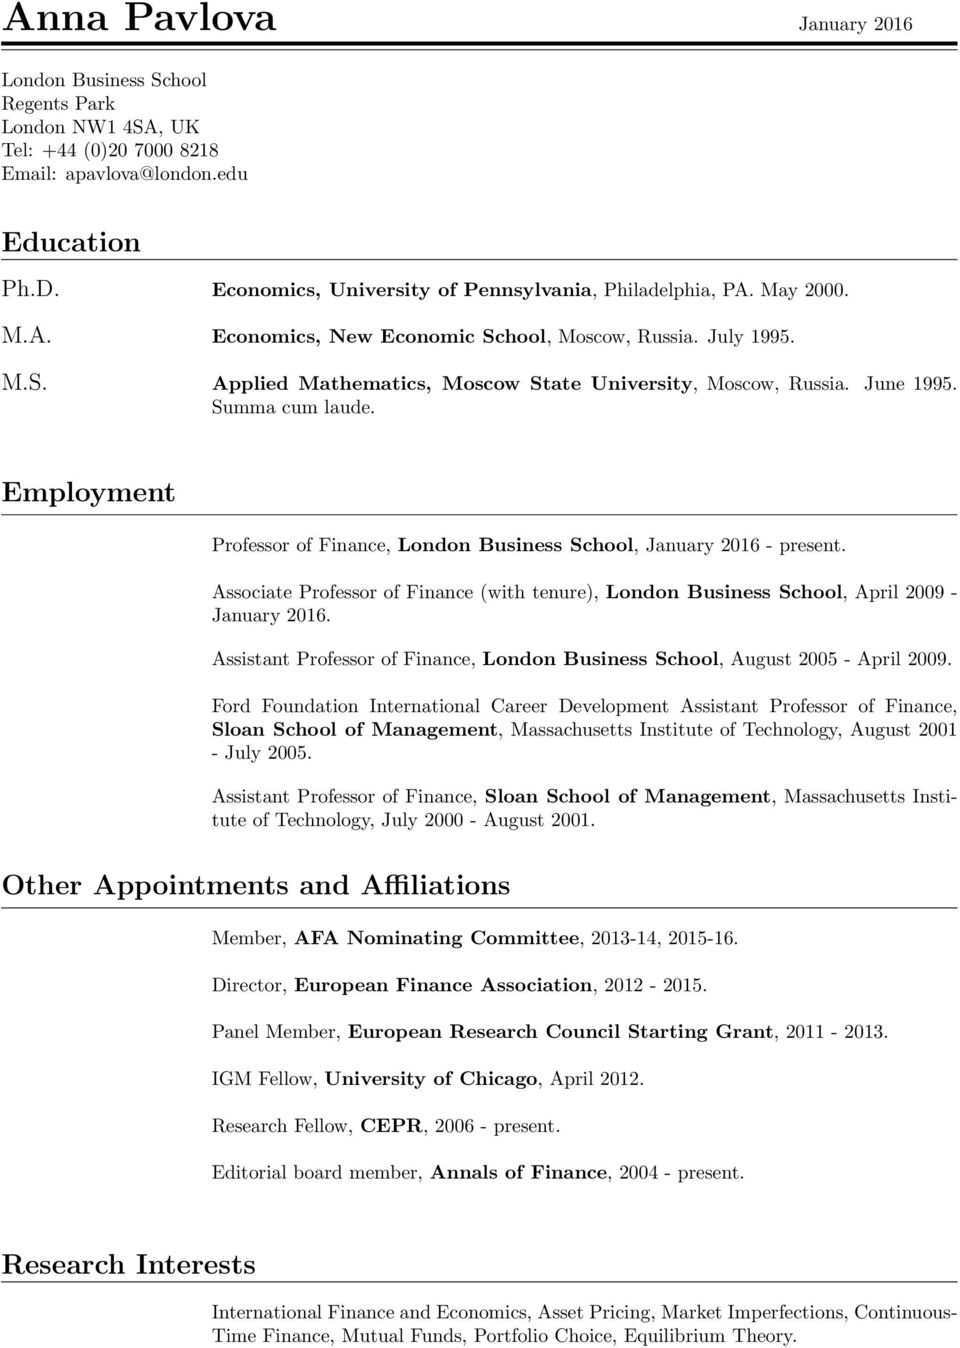 Employment Professor of Finance, London Business School, January 2016 - present. Associate Professor of Finance (with tenure), London Business School, April 2009 - January 2016.